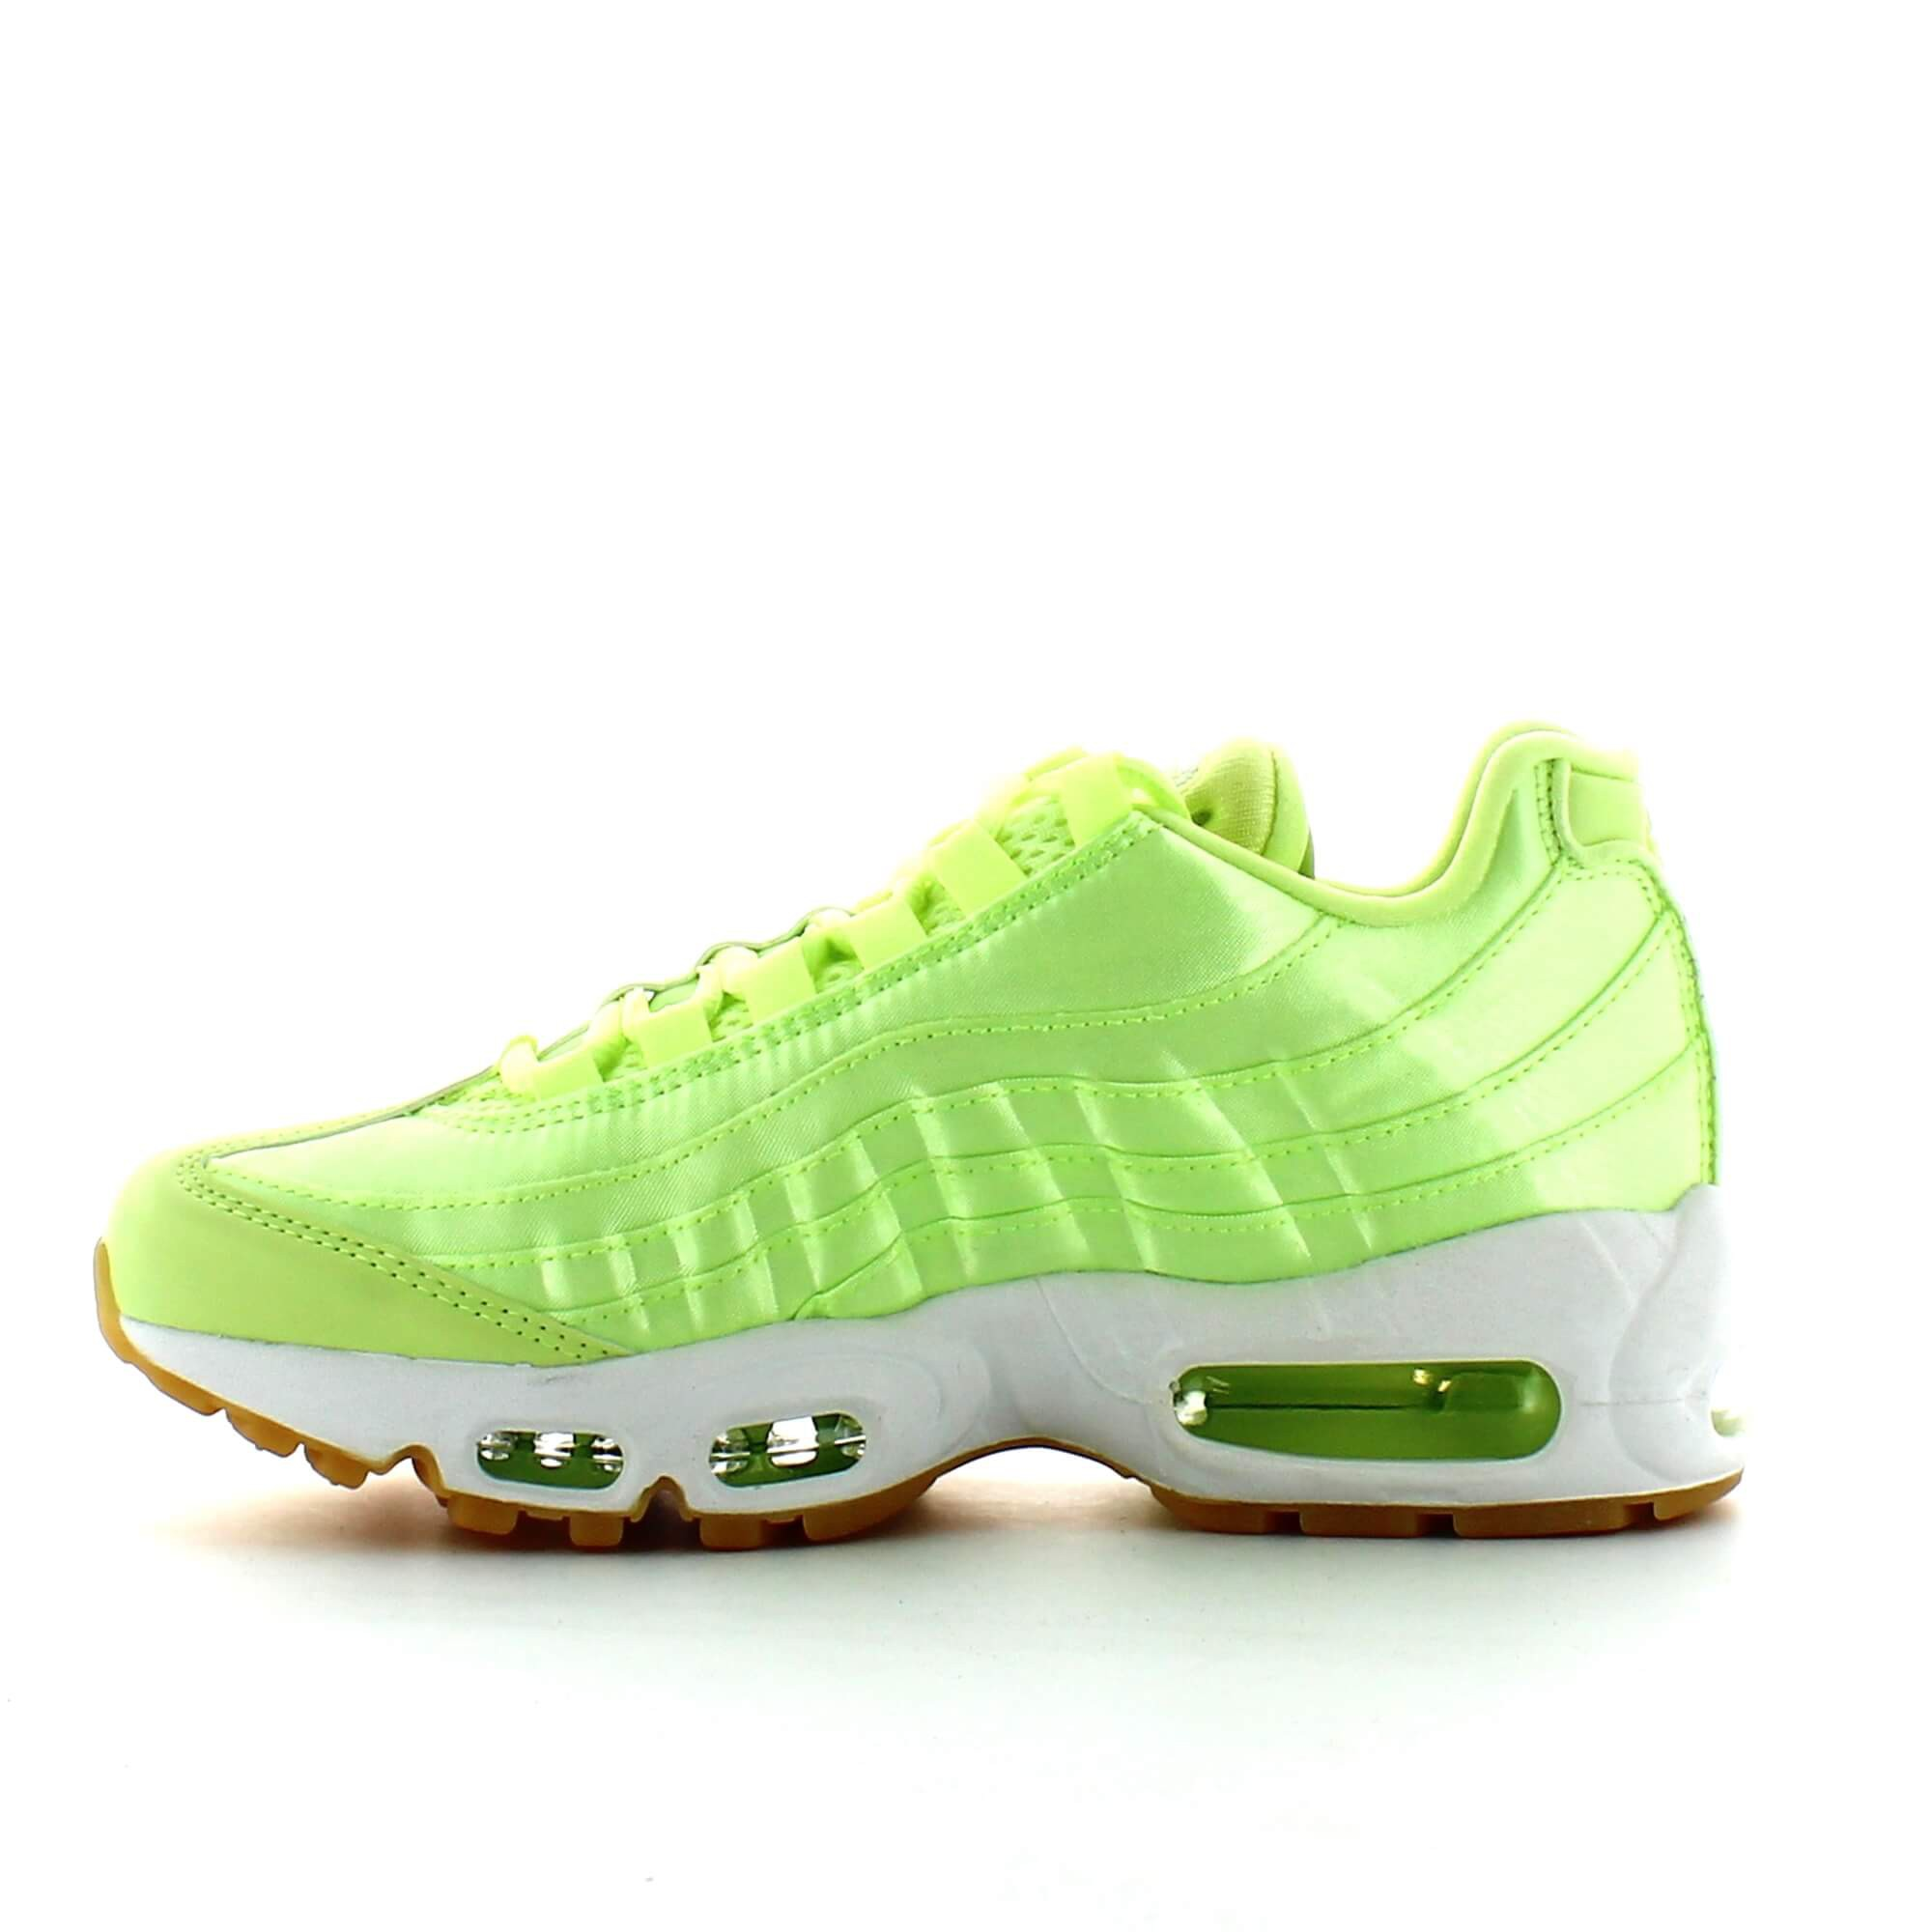 Zapatillas Nike Wmns Air Max 95 Wqs Verde Lima Mujer